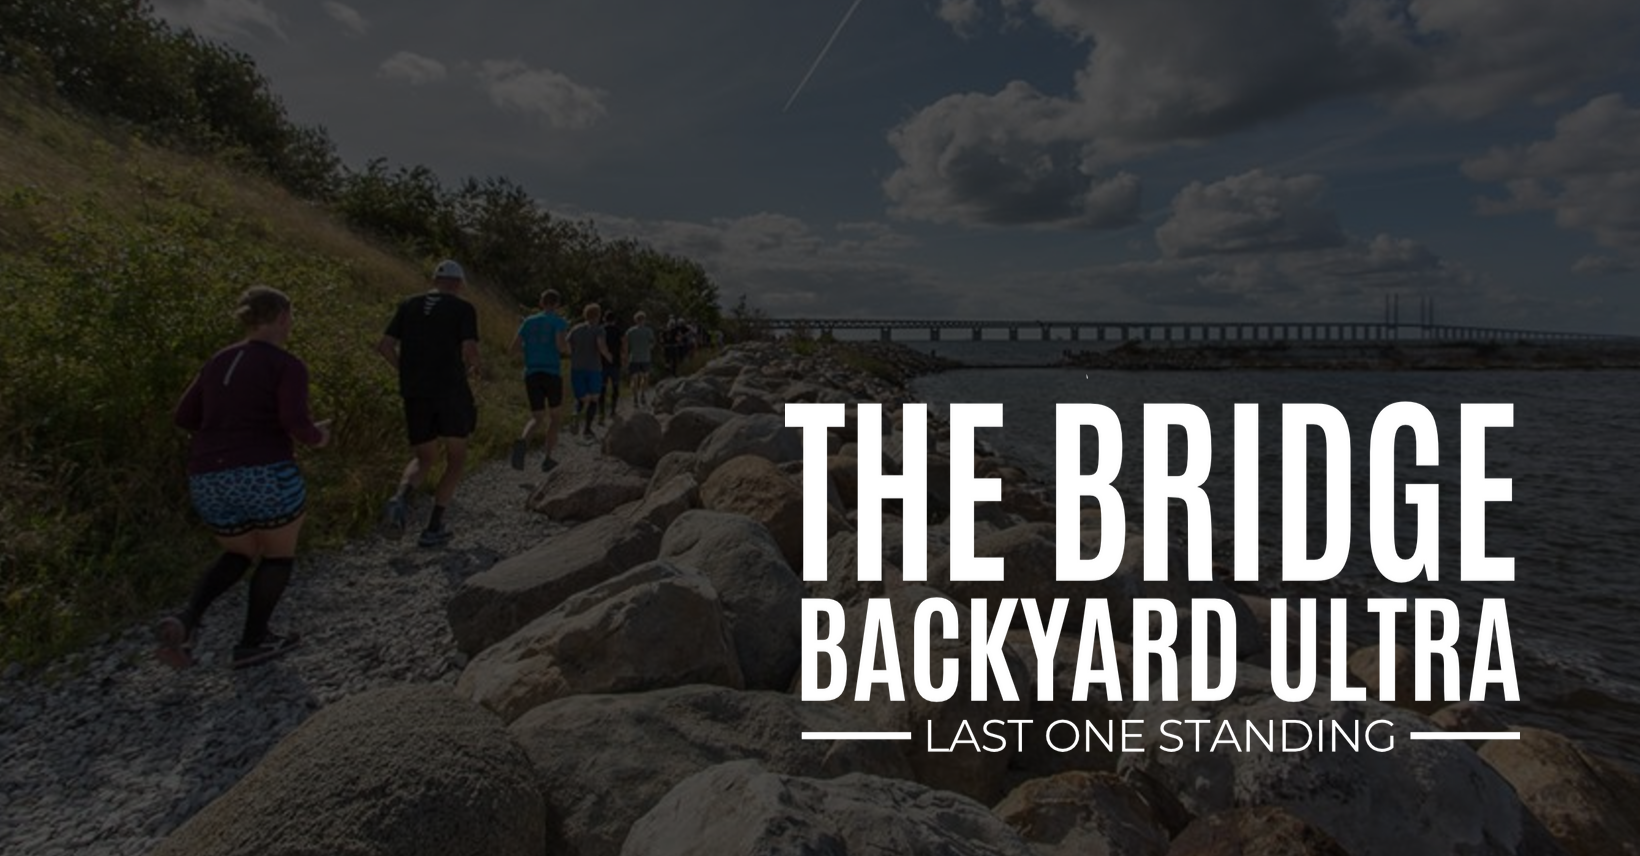 Sweden Runners The Bridge Backyard Ultra